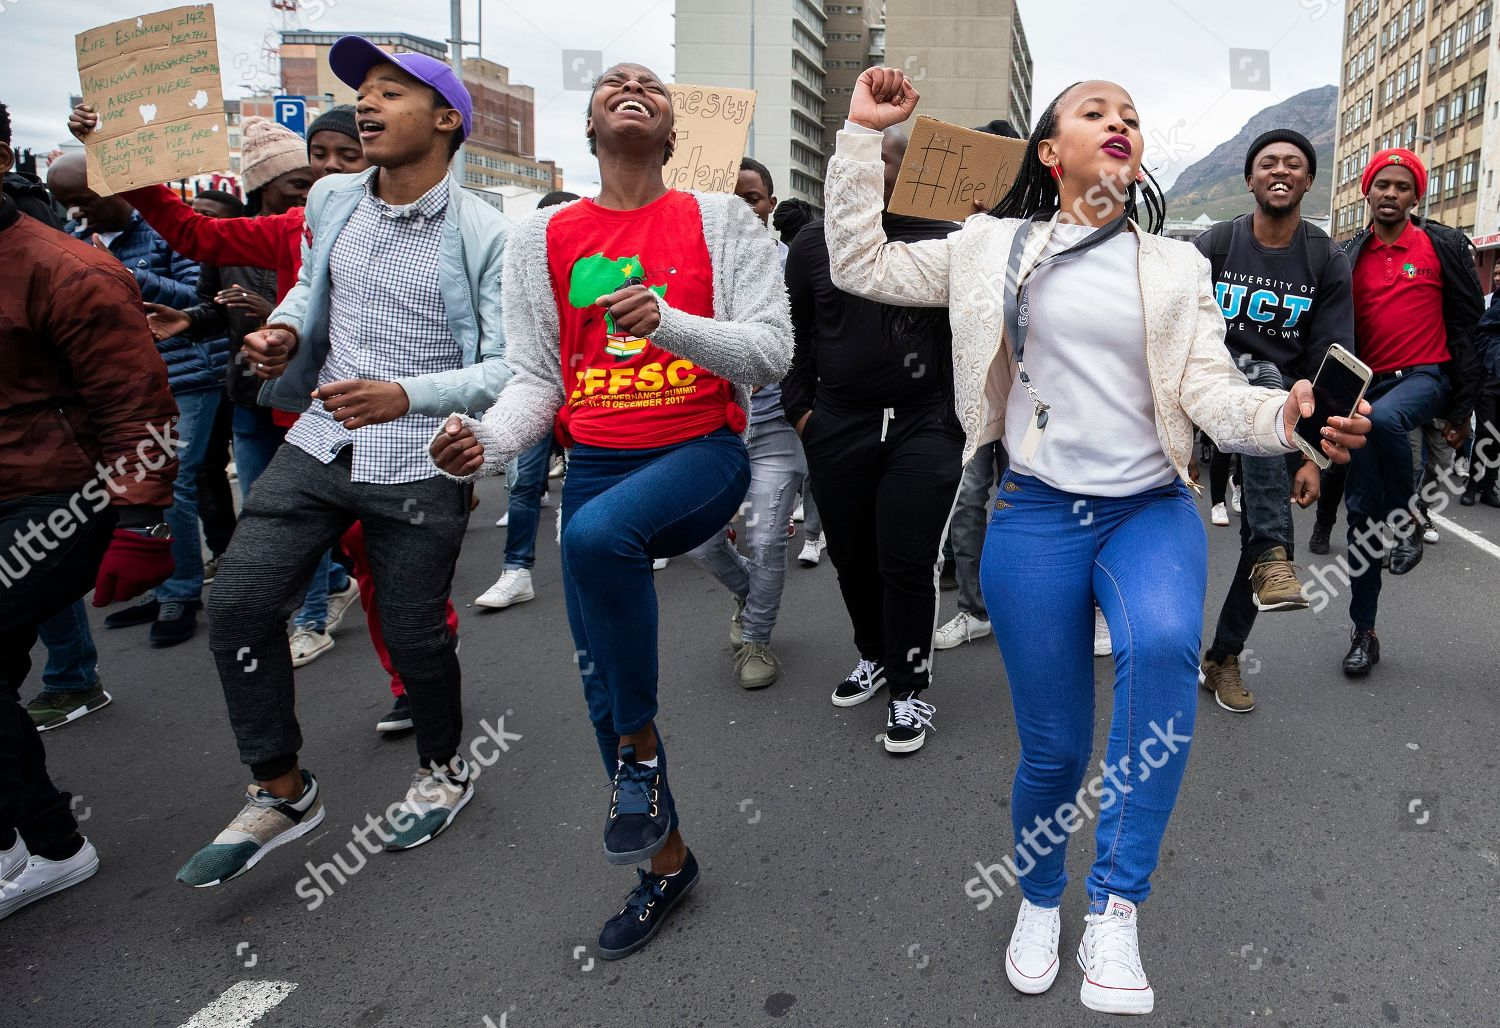 South African students protest on streets outside Editorial